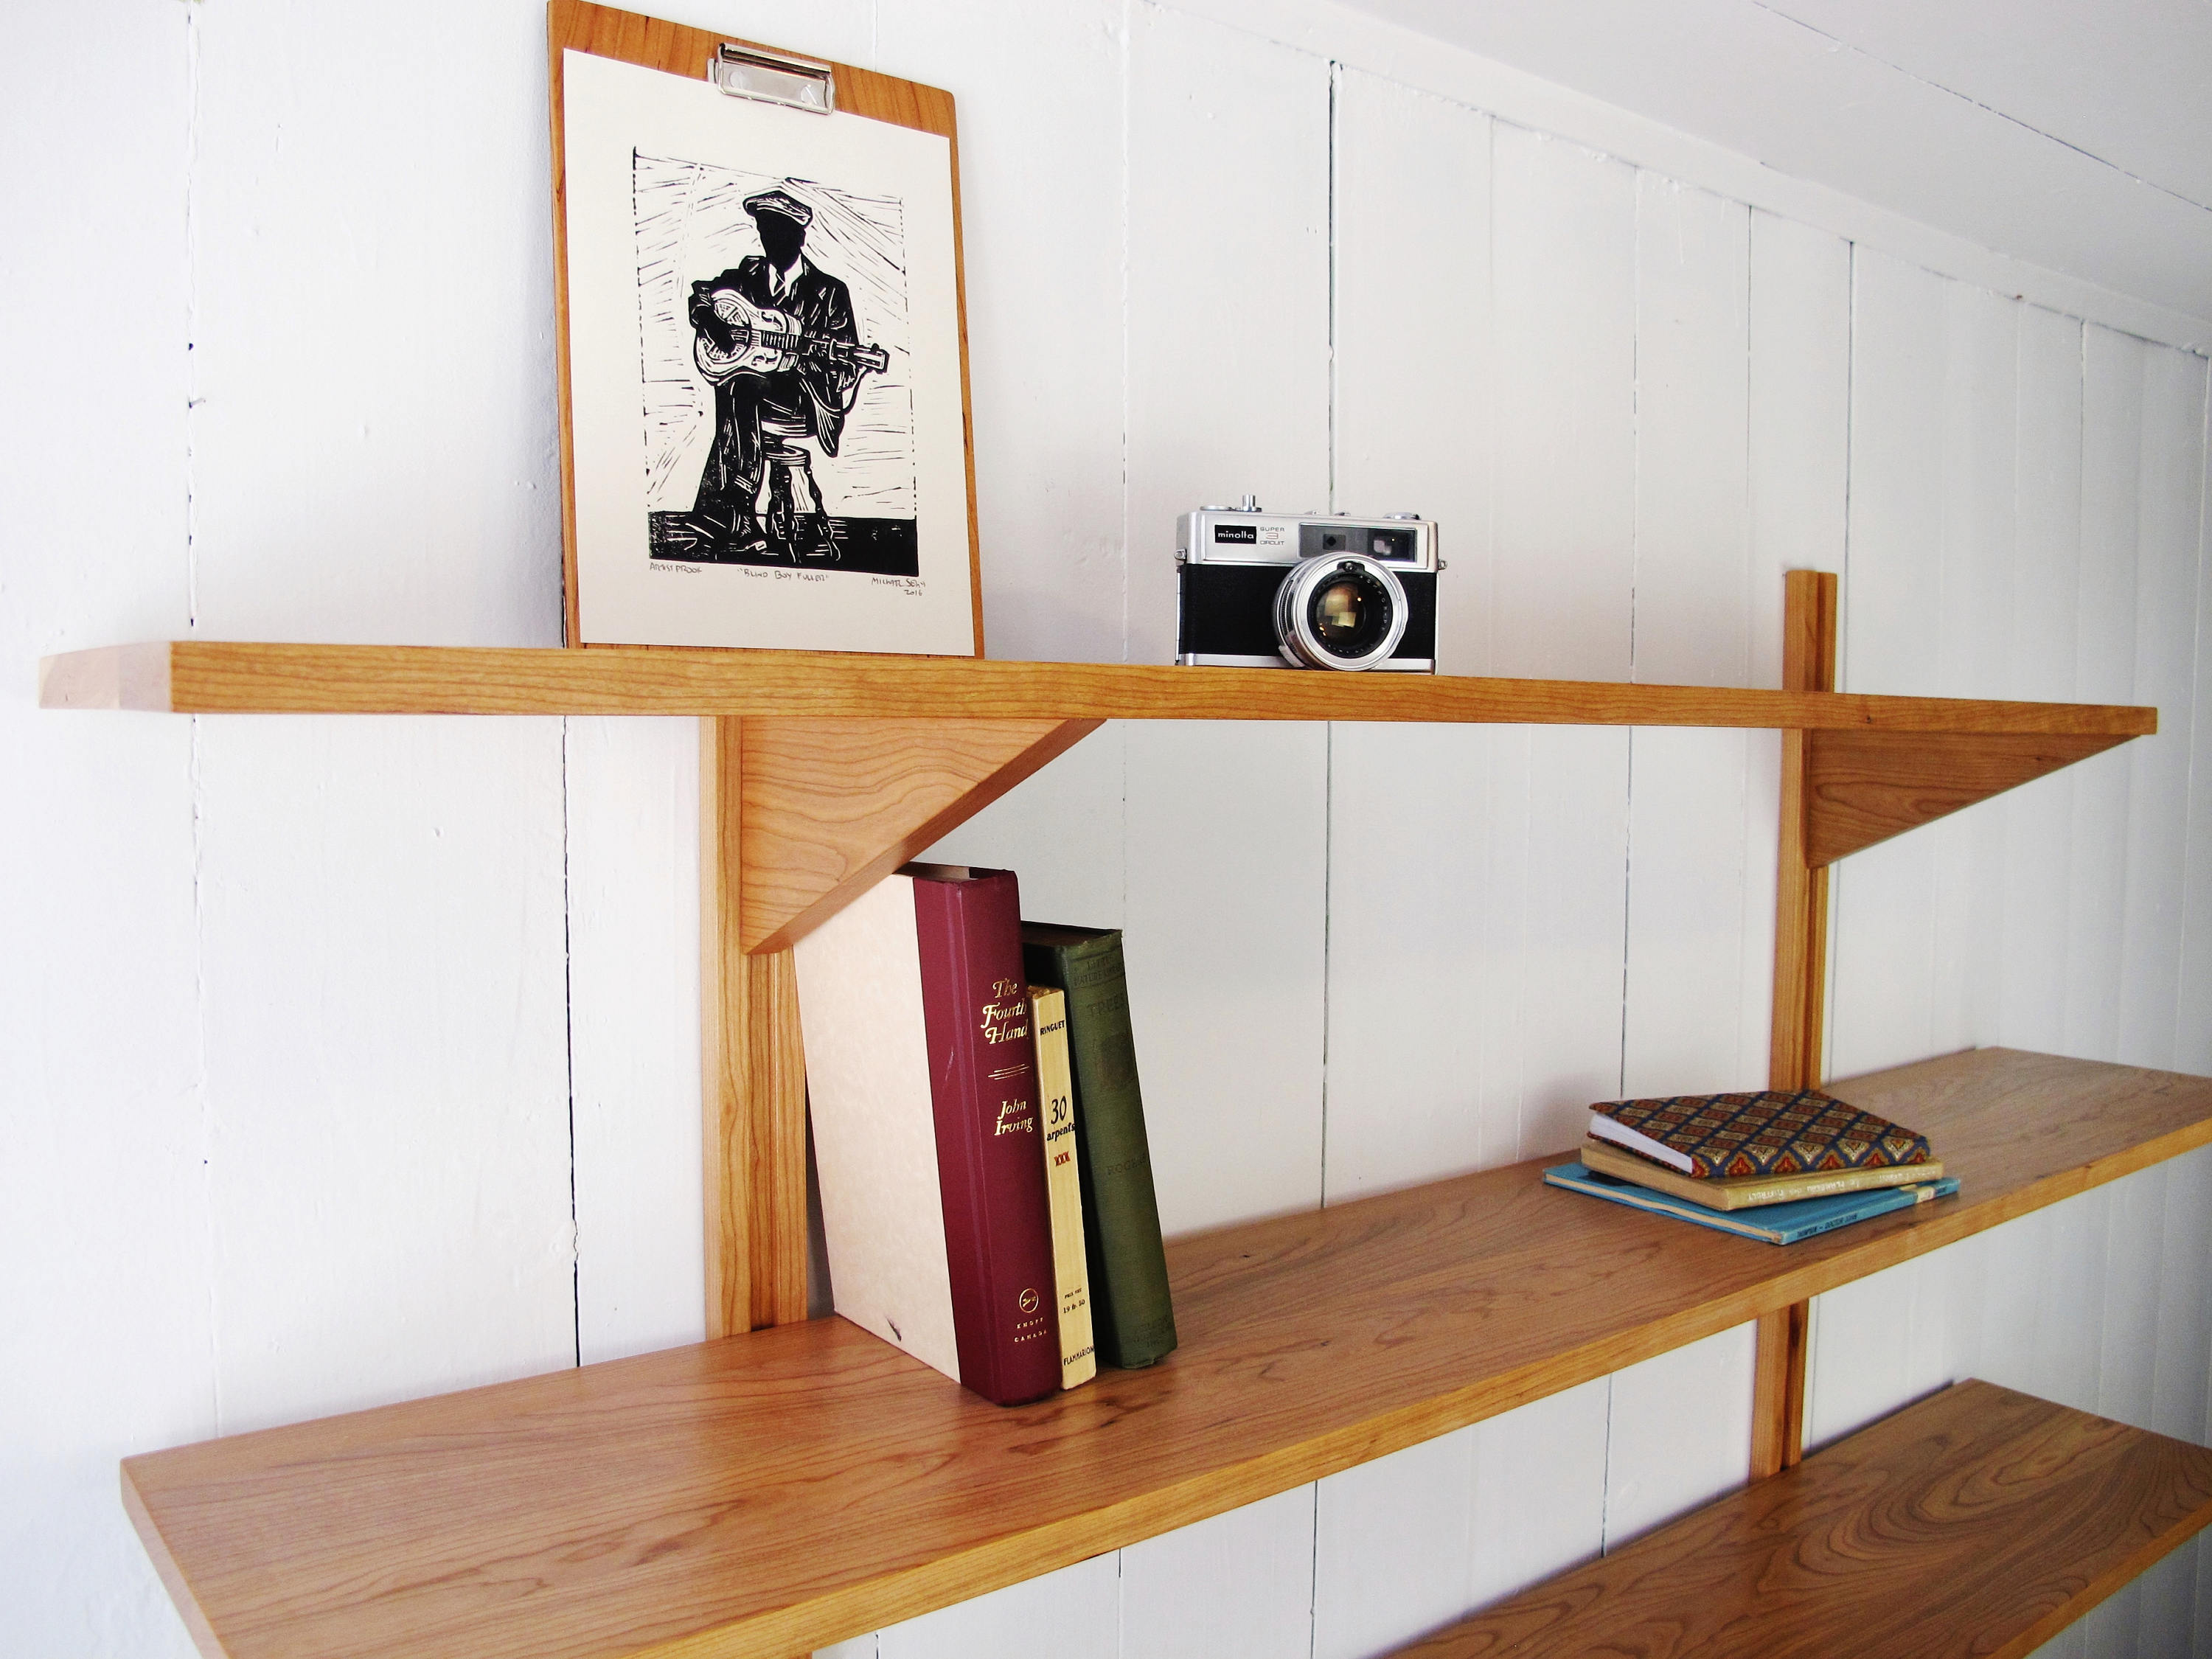 Bookshelves 5 Shelves Wall Mounted System Customizable Mid Century Bookcase Solid Wood Wall Unit Scandinavian Style Modern